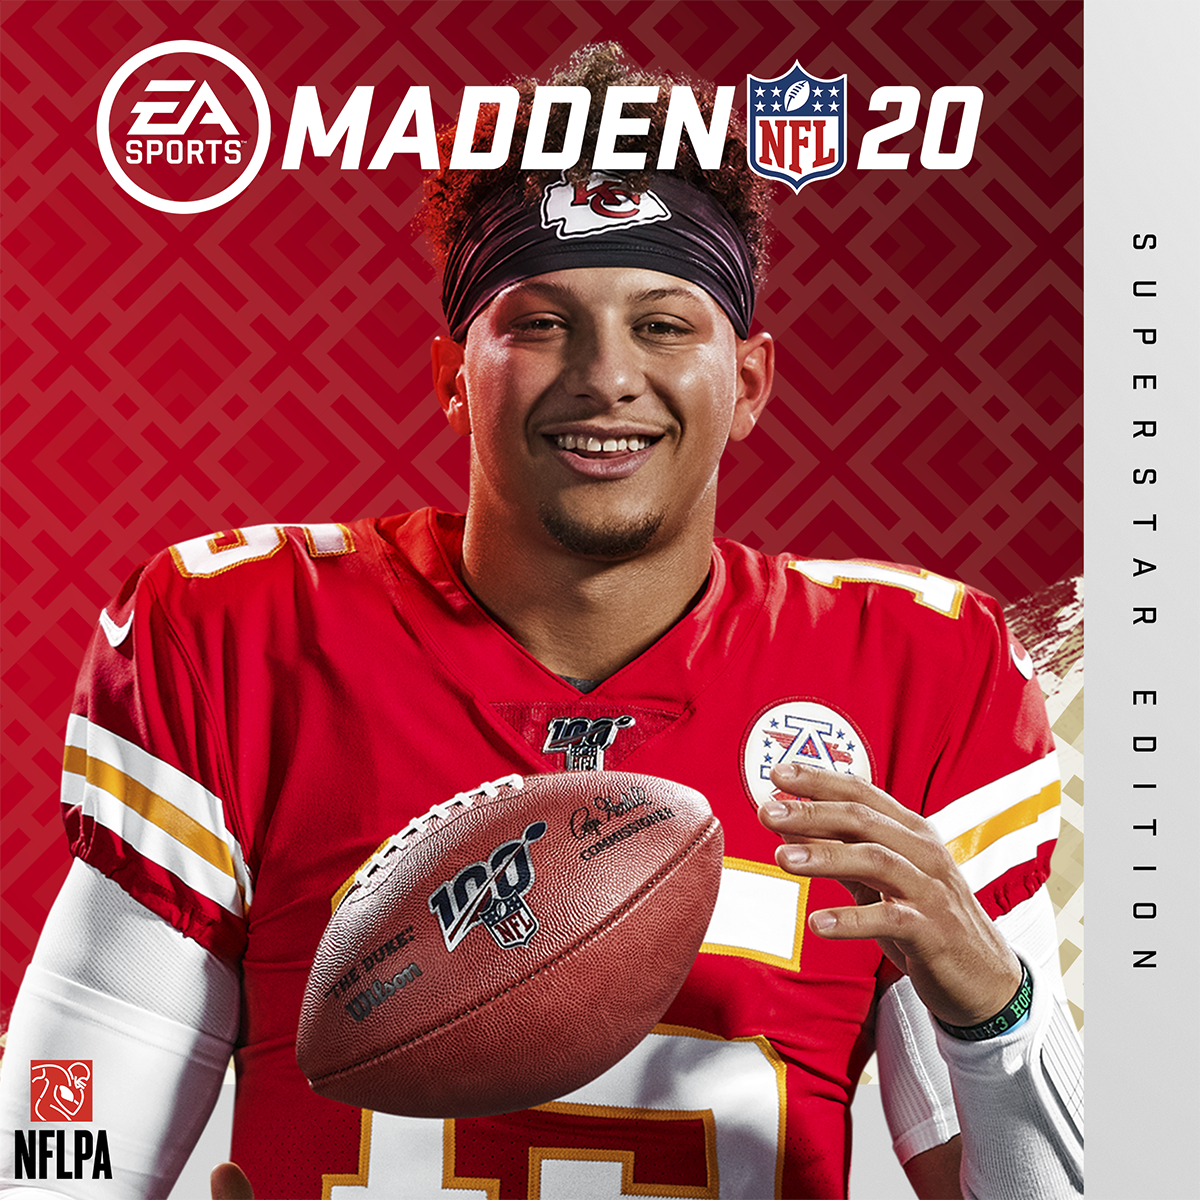 Madden NFL 20 - Superstar Edition Box Art